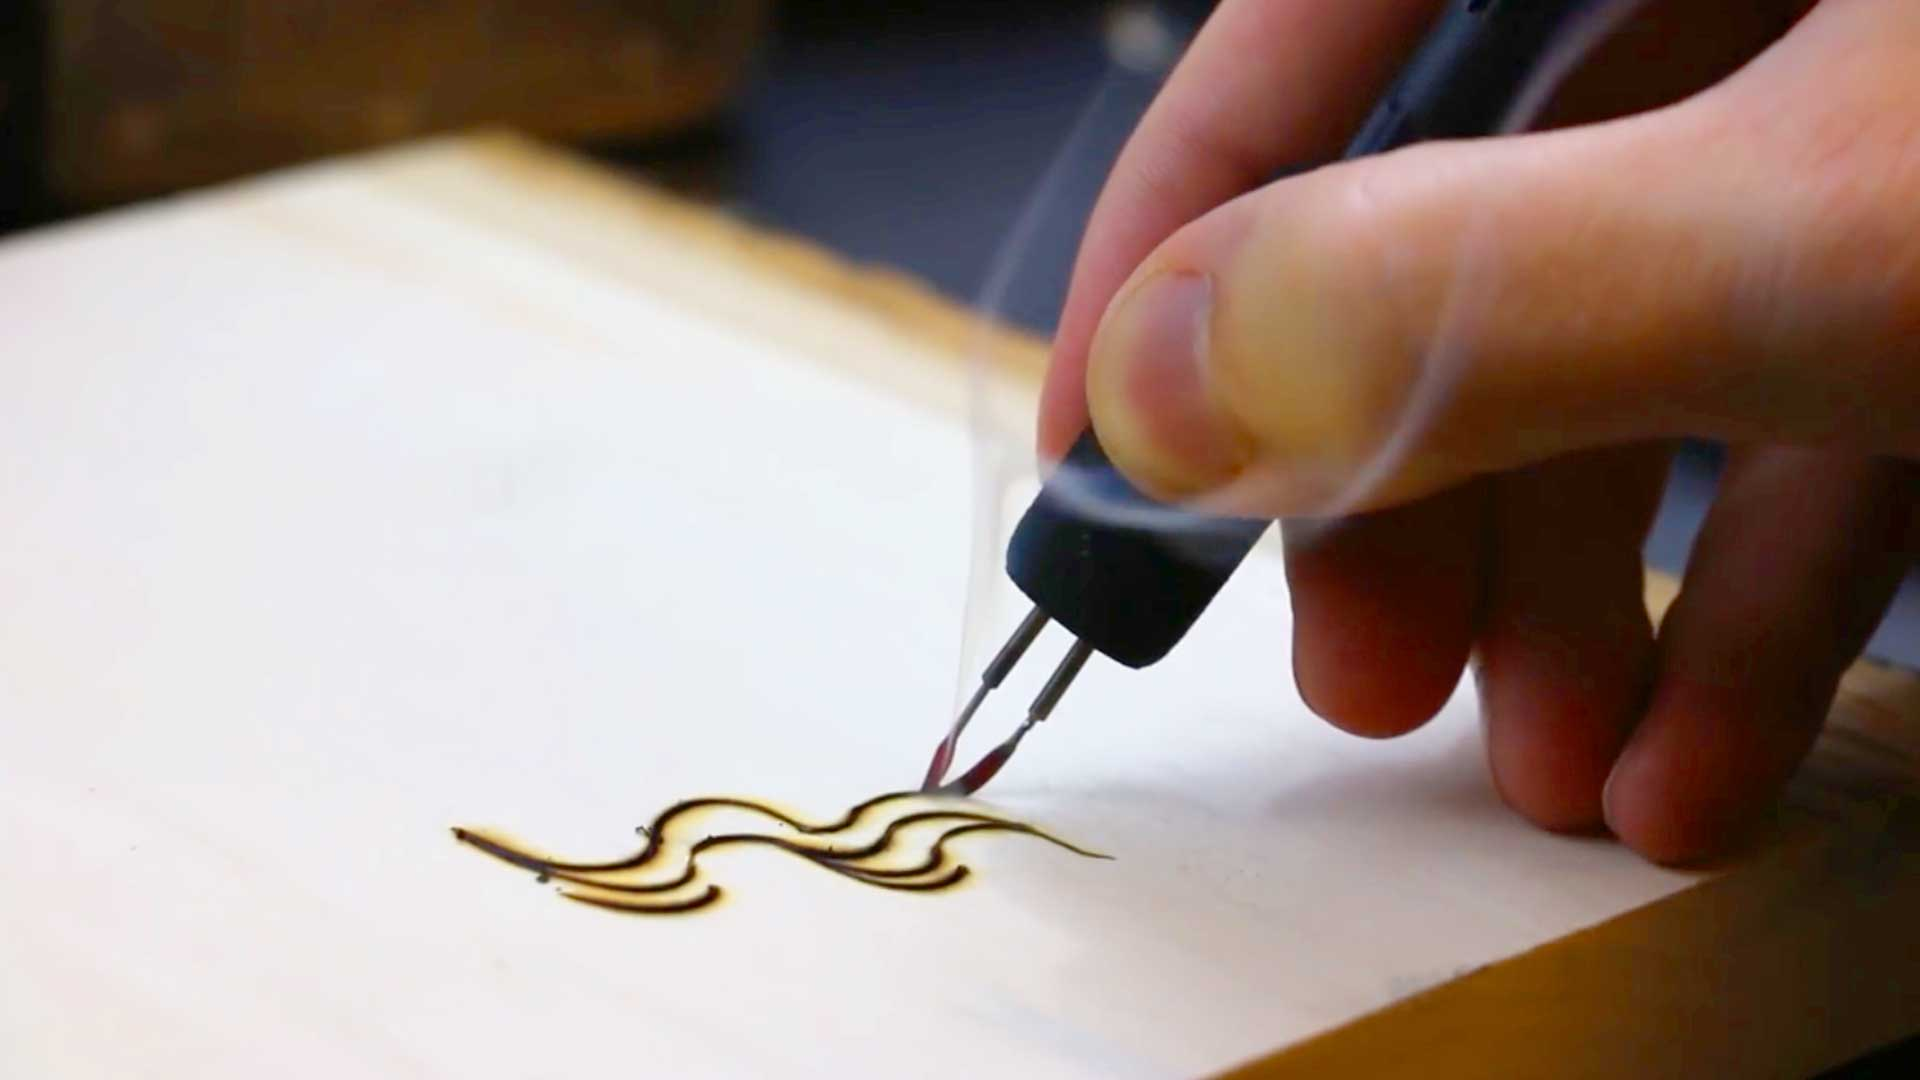 Pyrography Artist Burns Beautiful Swirls Into Wood With A Fire Pen